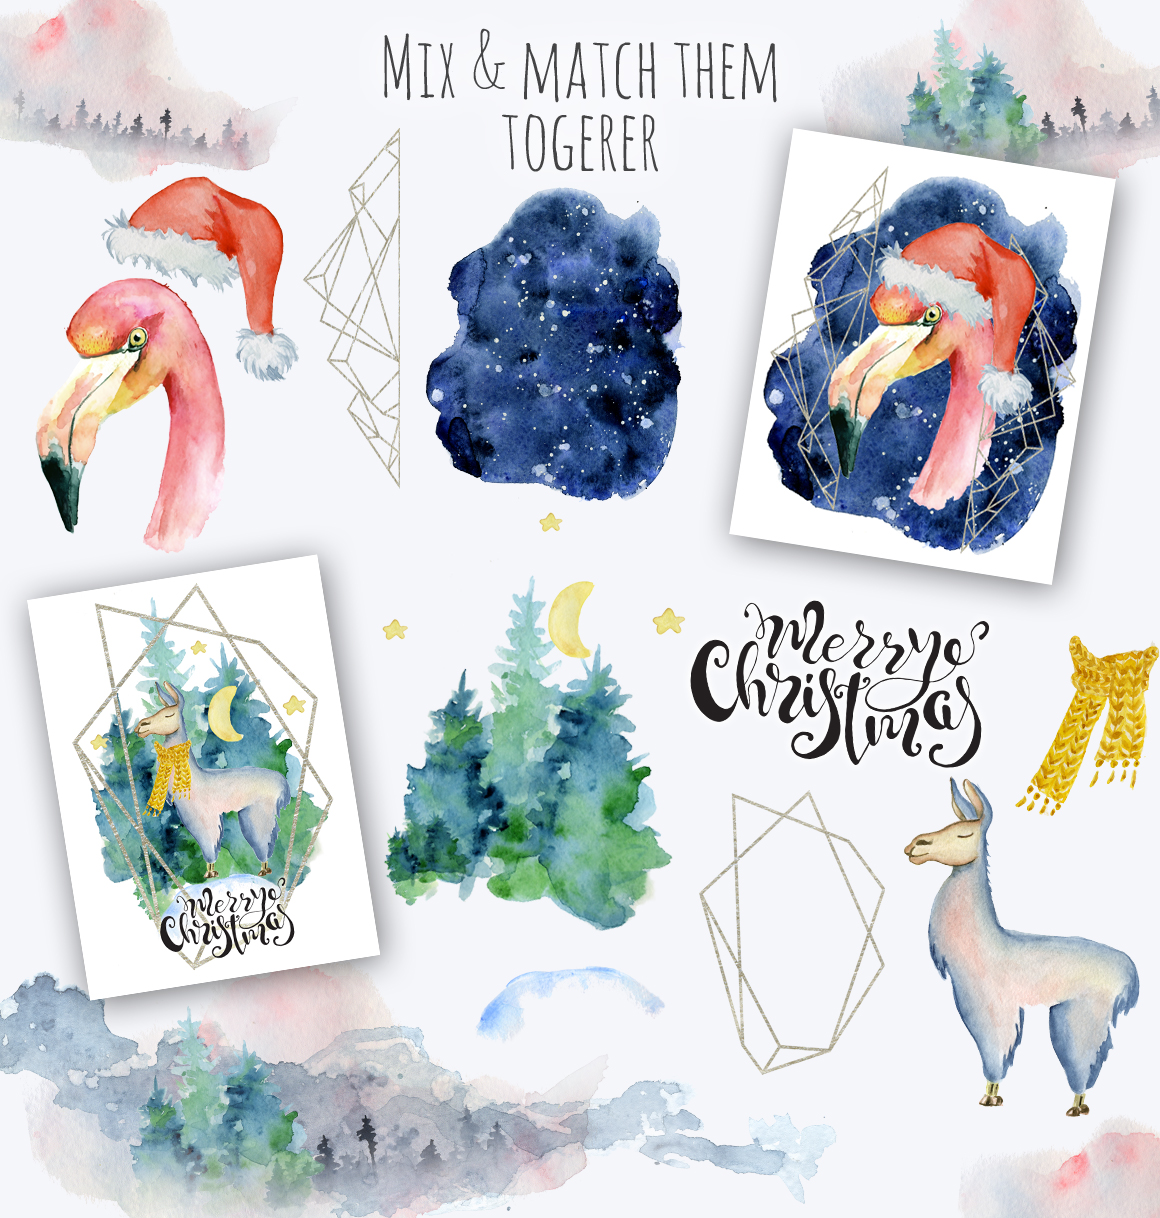 Magical Winter Clipart: 14 Christmas Watercolor Clipart Bundles in 1 - $28 - 18 mix and match